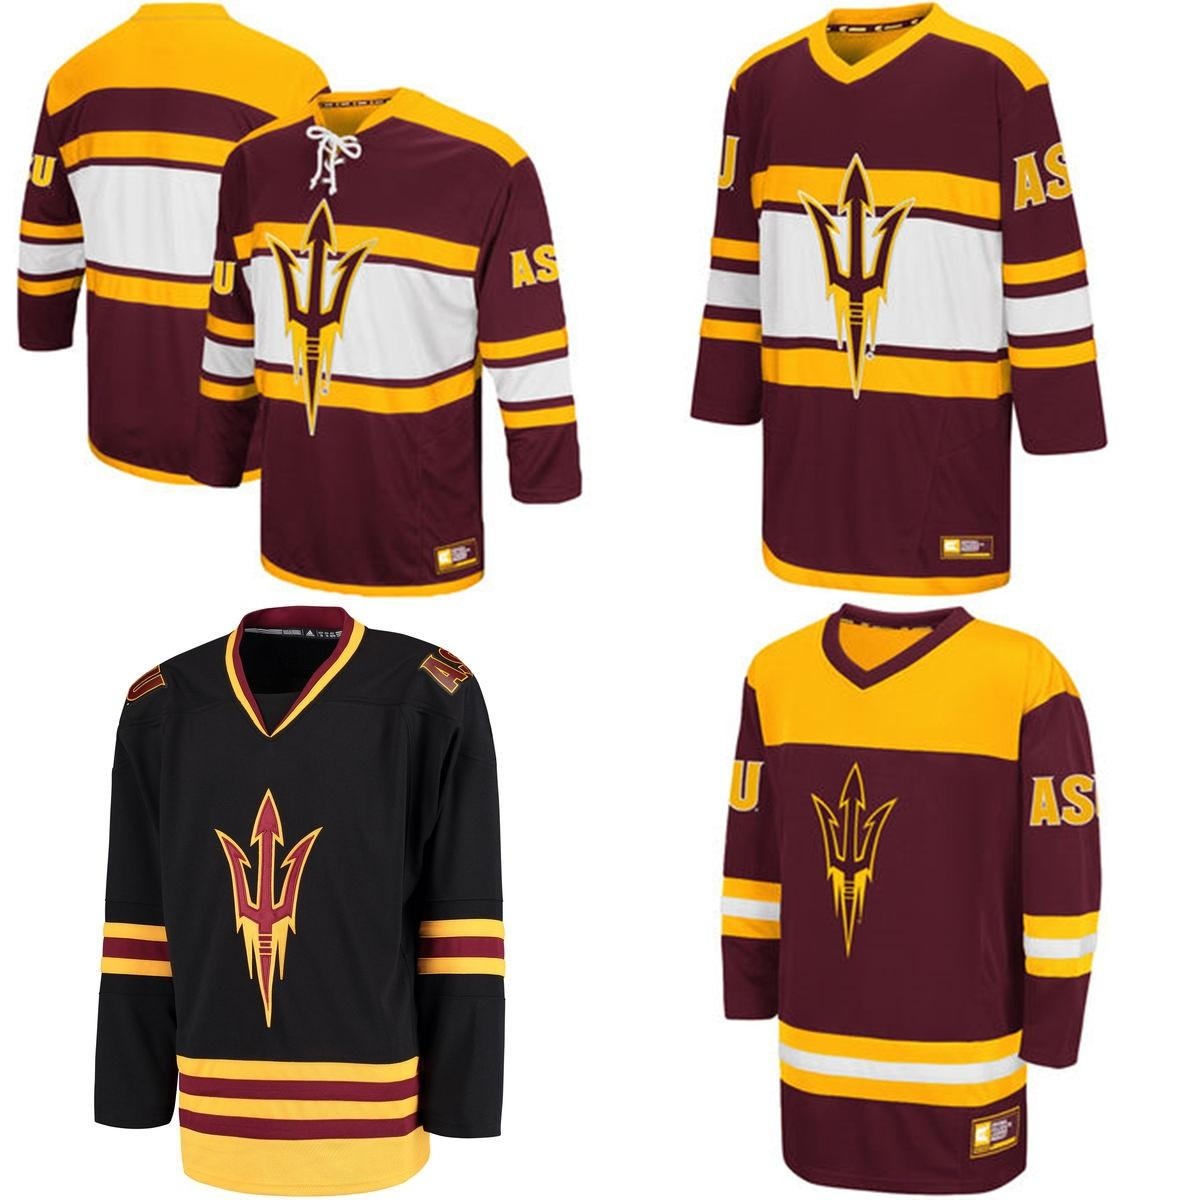 Customize NCAA Arizona State Sun Devils College Jersey Mens Womens ... 8fc612ded